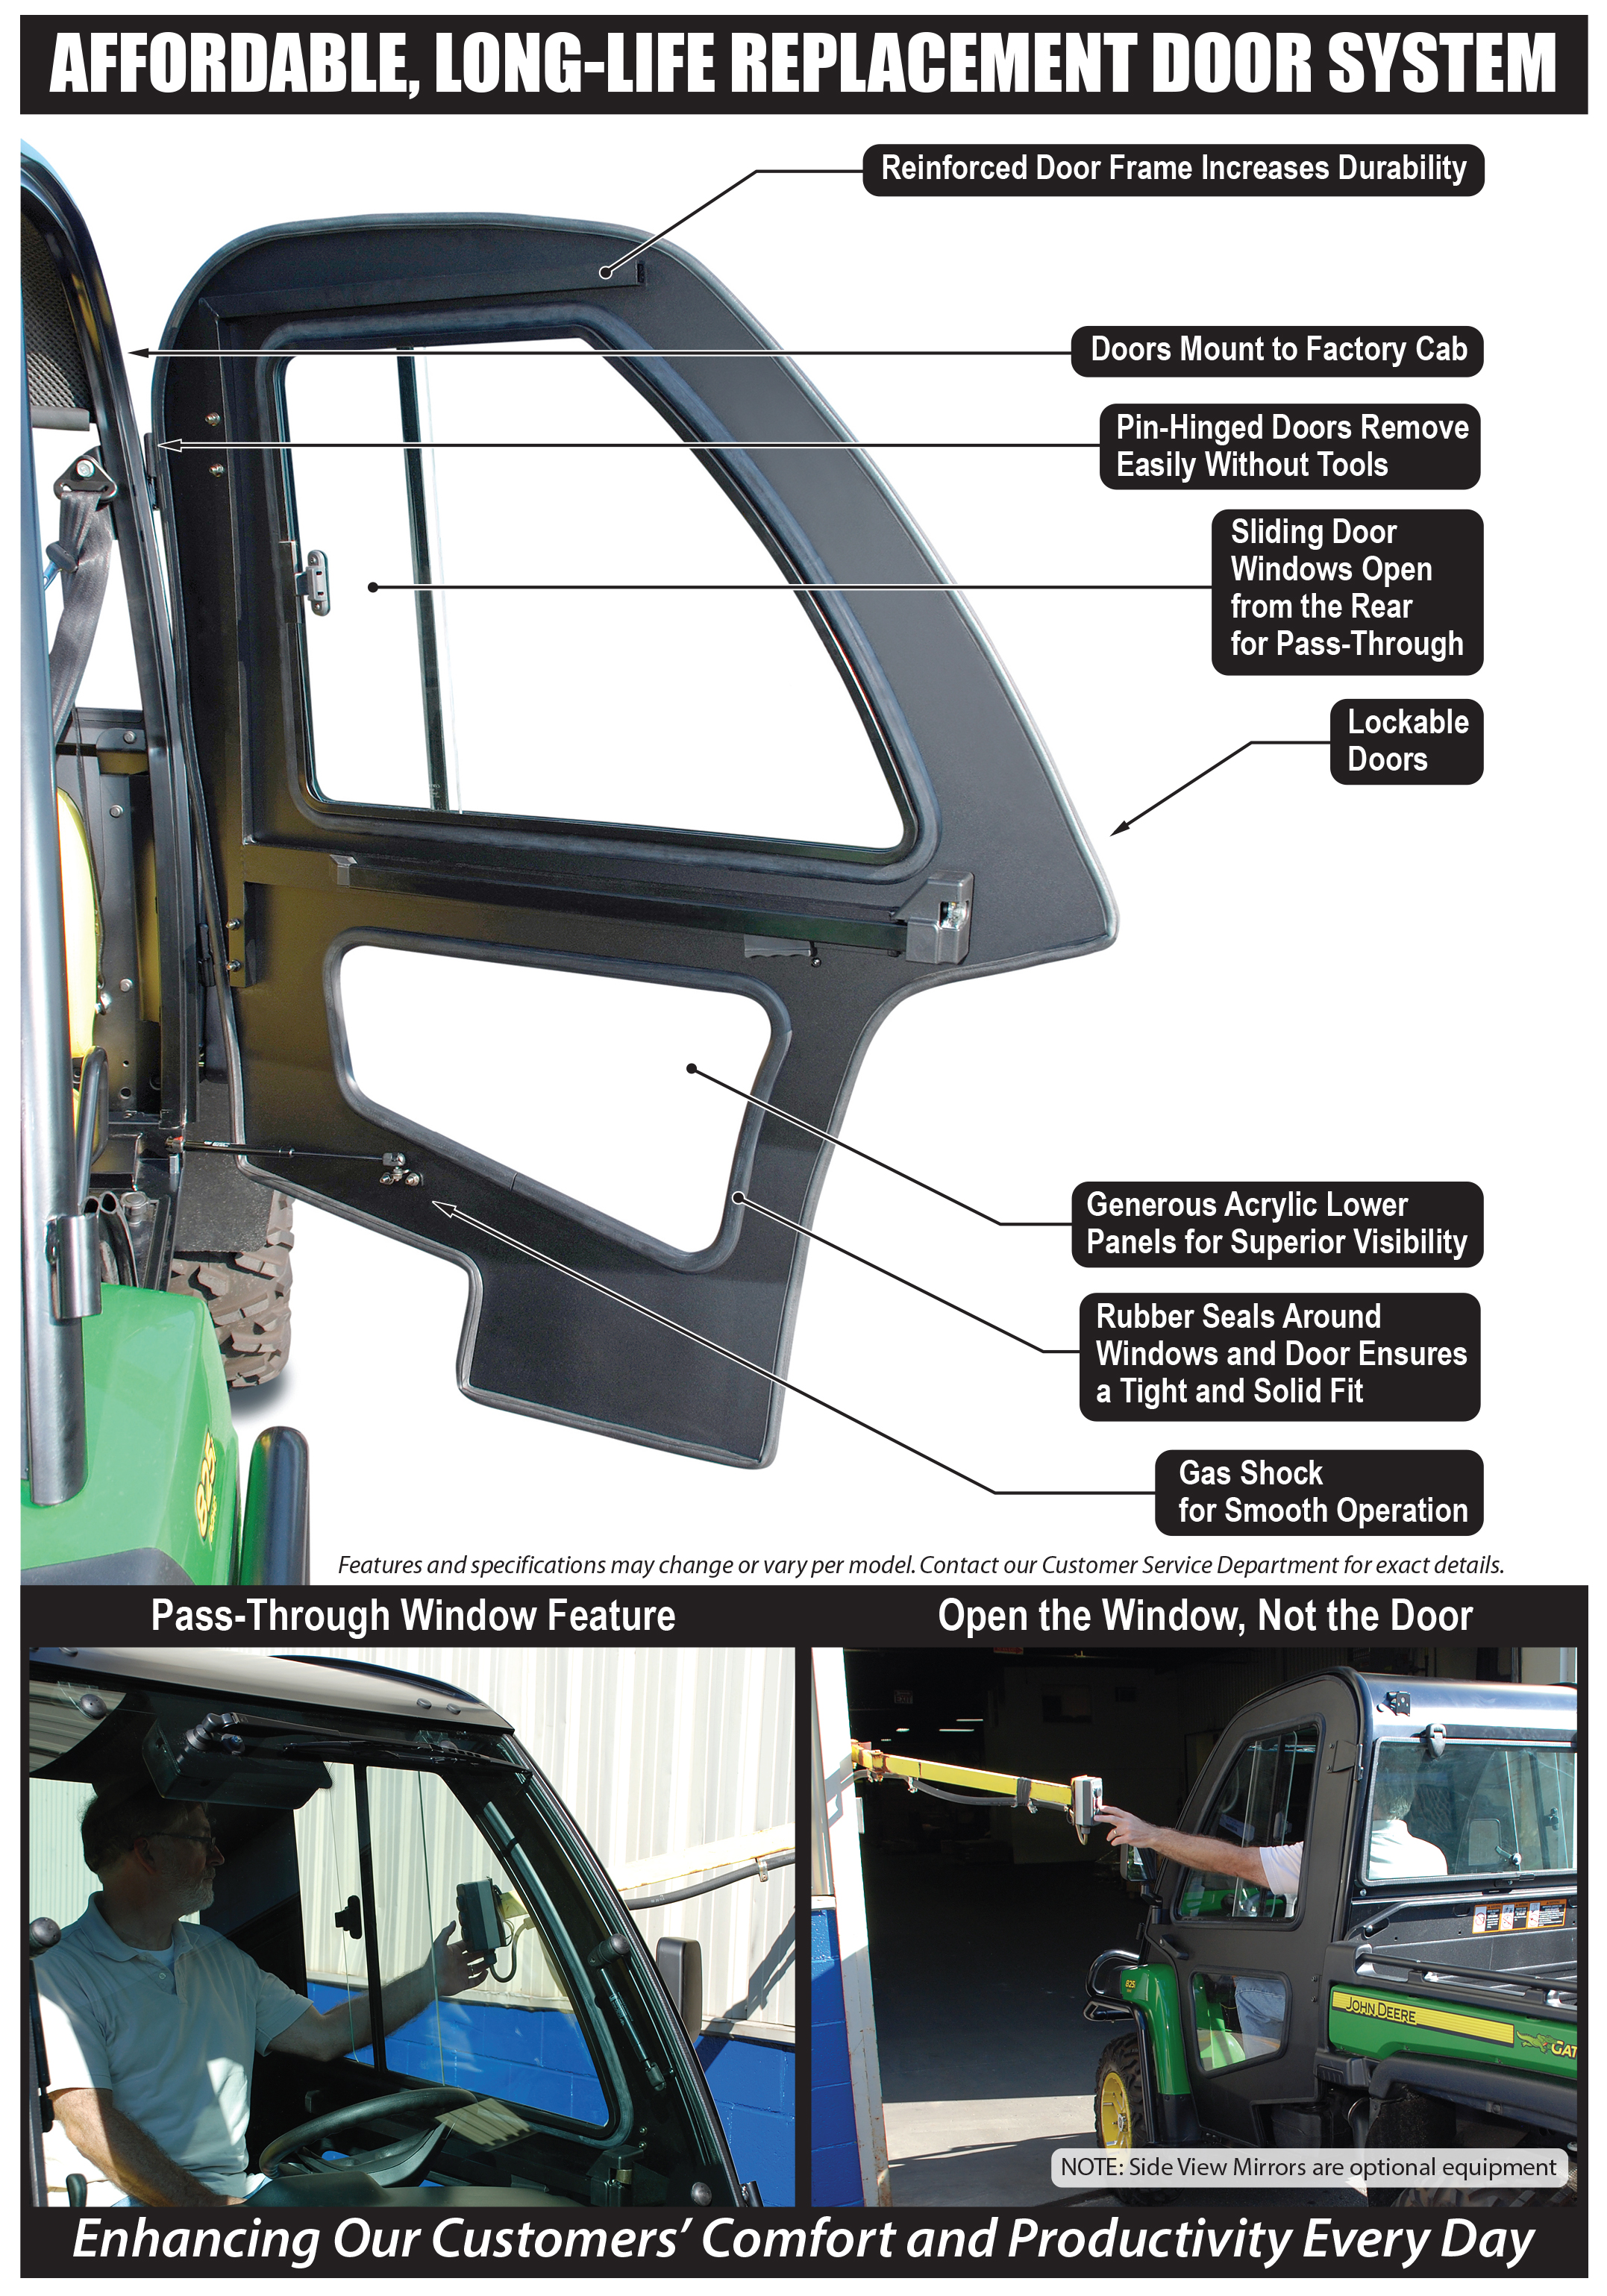 Aluminum Replacement Doors For Deluxe Cab Xuv Gators